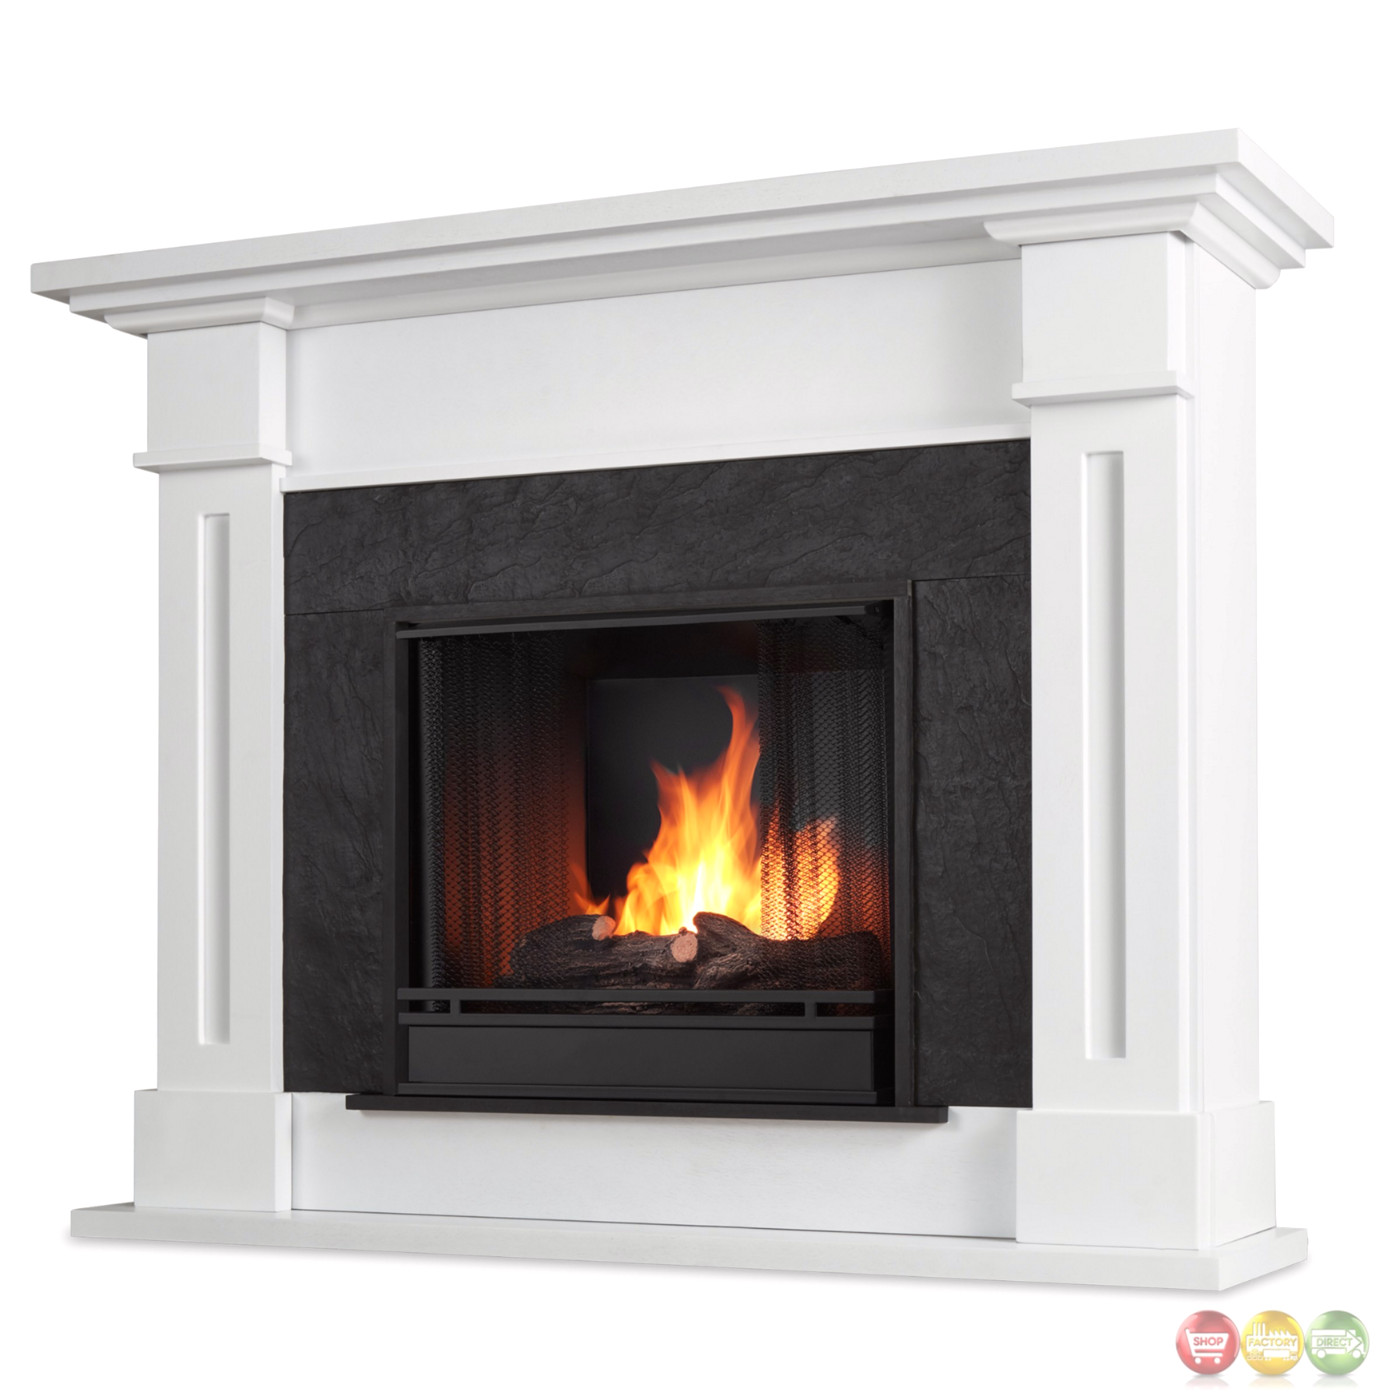 Ventless Fireplace: Kipling Ventless Gel Fuel Fireplace In White With Cast